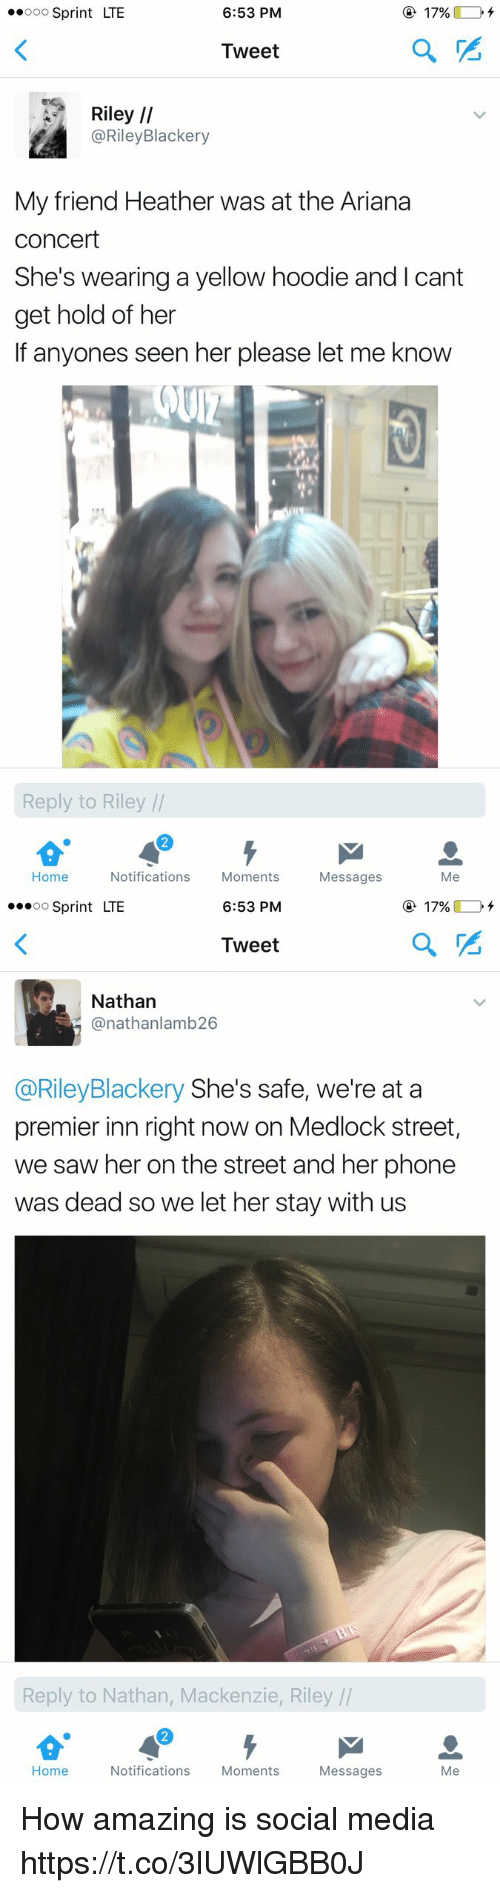 mackenzie: ..ooo Sprint LTE  6:53 PM  17%  Tweet  Riley  II  @Riley Blackery  My friend Heather was at the Ariana  Concert  She's wearing a yellow hoodie and I cant  get hold of her  If anyones seen her please let me know  Reply to Riley  Home  Notifications  Moments  Messages  Me   6:53 PM  O 17%  OO  Sprint LTE  Tweet  Nathan  (anathanlamb 26  @Riley Blackery She's safe, we're at a  premier inn right now on Medlock street,  we saw her on the street and her phone  was dead so we let her stay with us  Reply to Nathan, Mackenzie, Riley  Home  Notifications  Moments  Messages  Me How amazing is social media https://t.co/3lUWlGBB0J